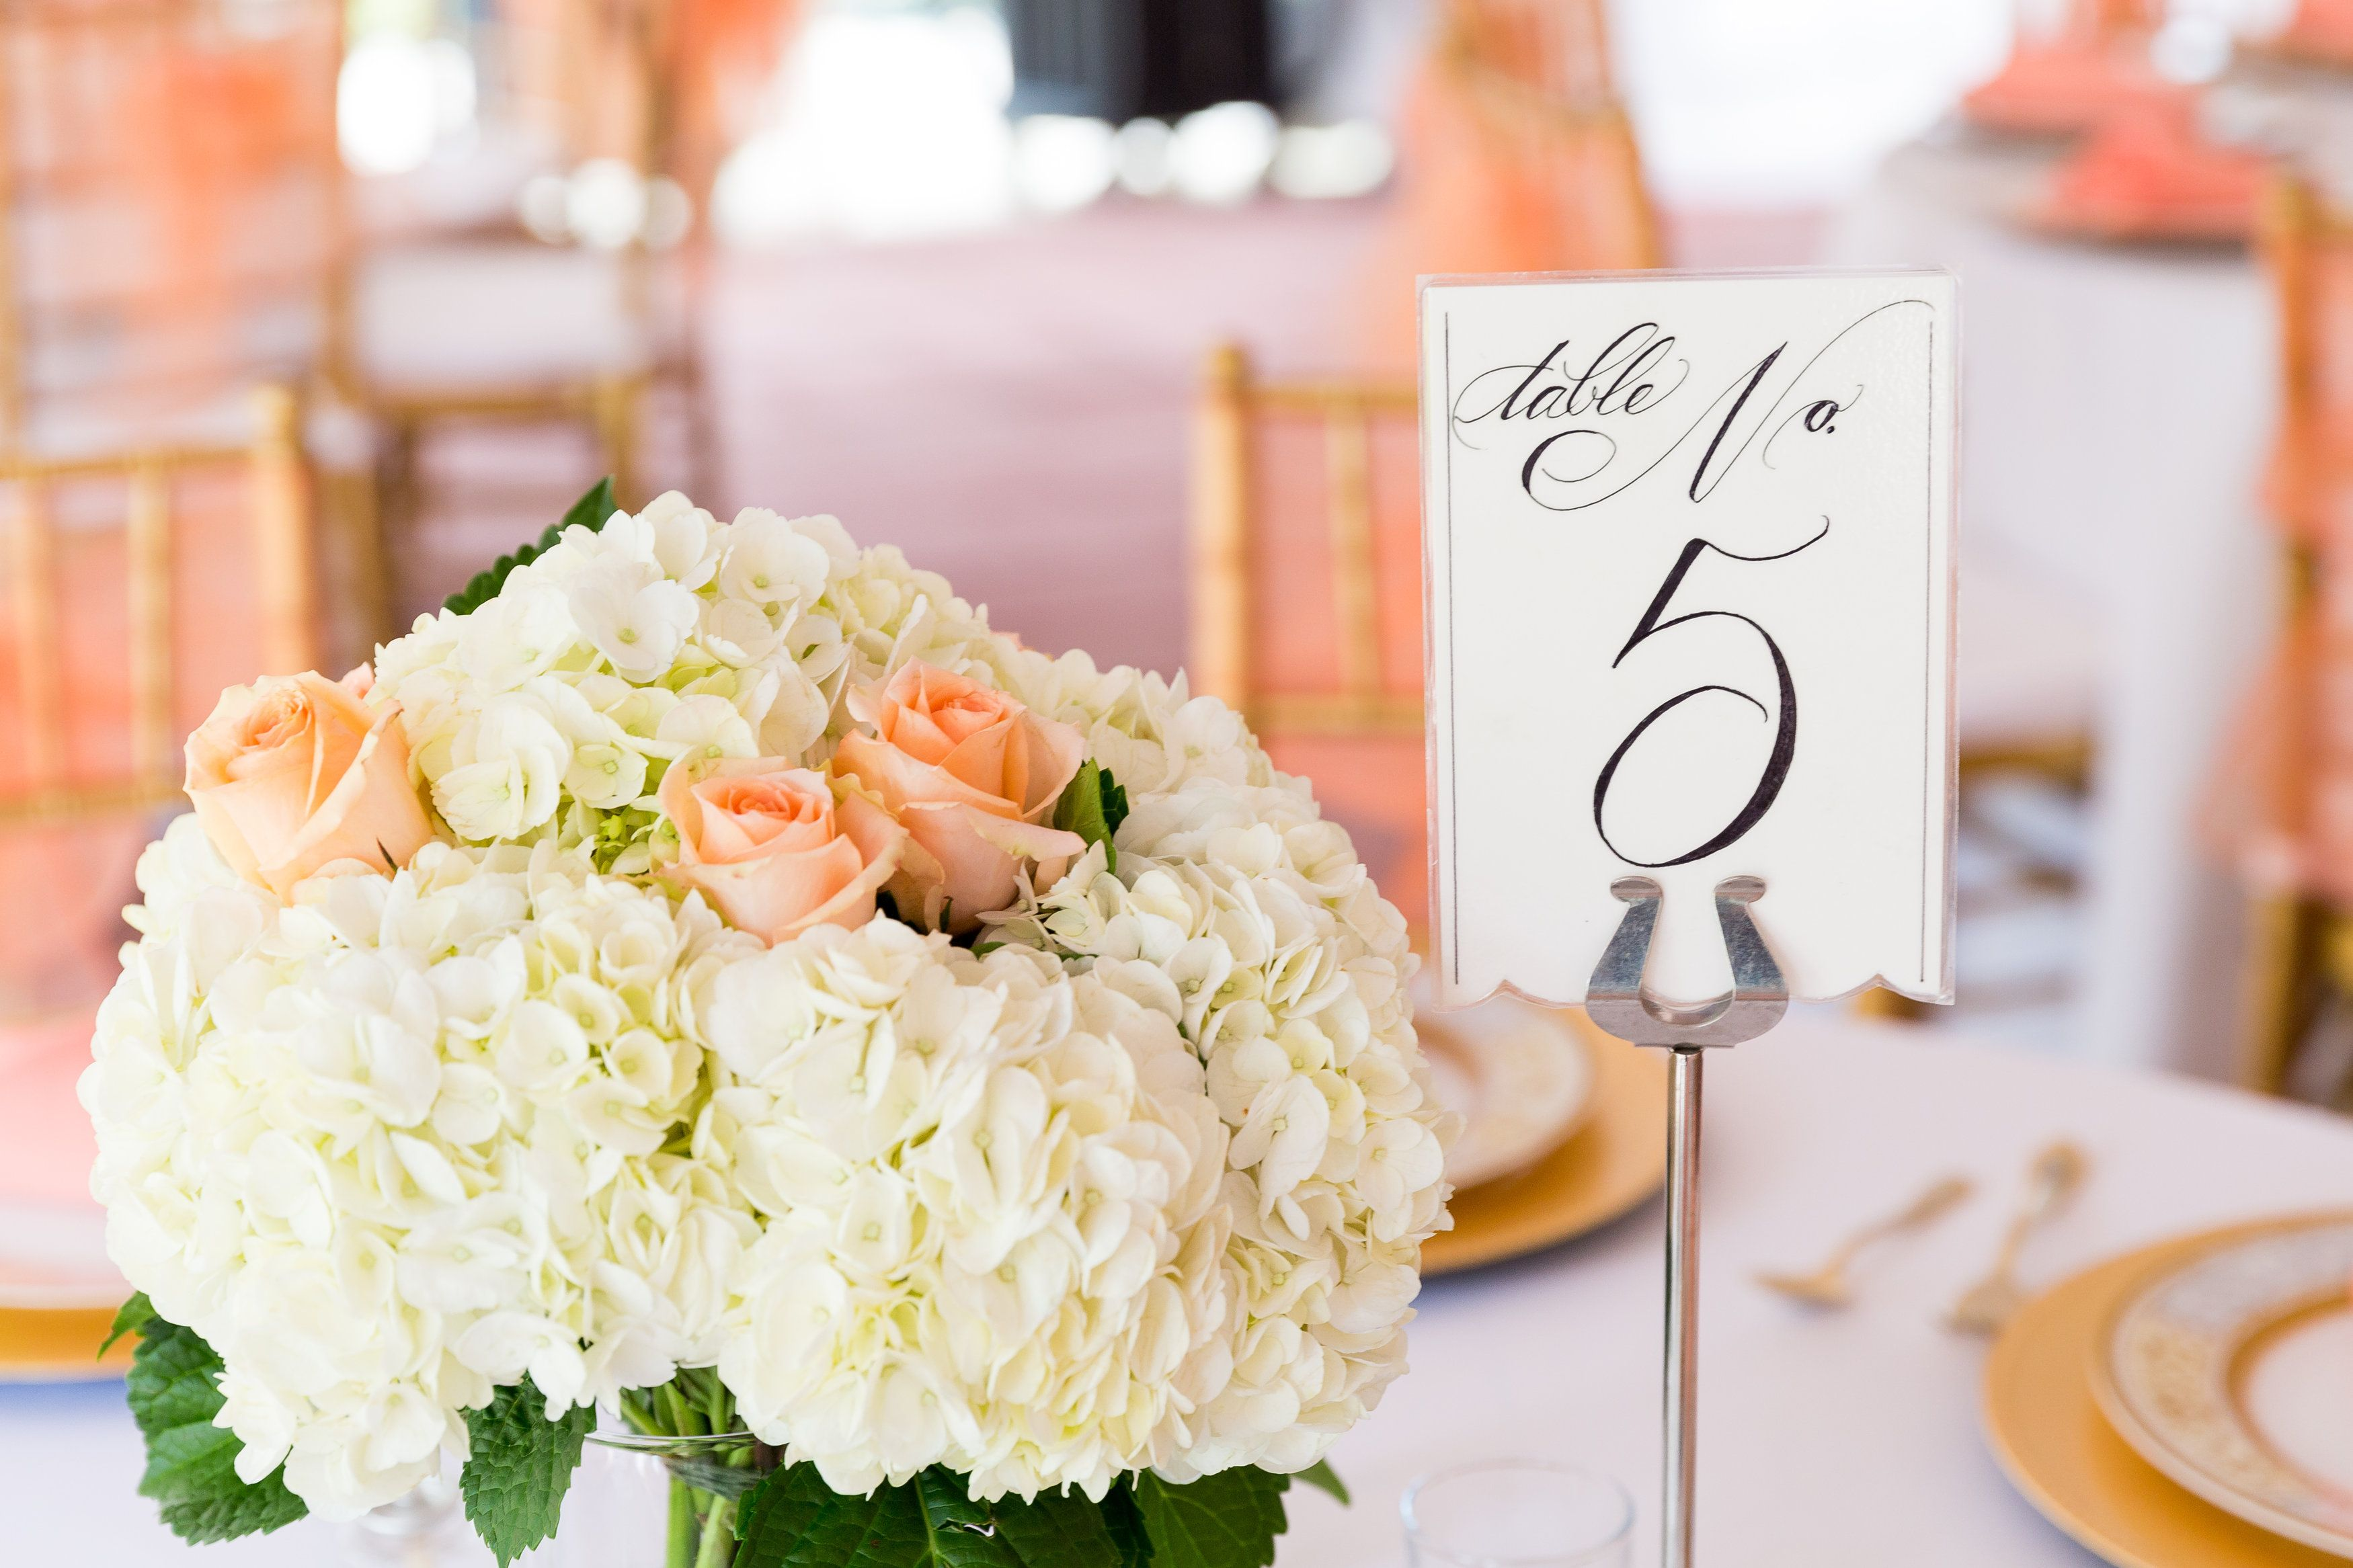 Wedding Centerpiece White Hydrangea Peach Rose Center Piece Whole Foods Flowers